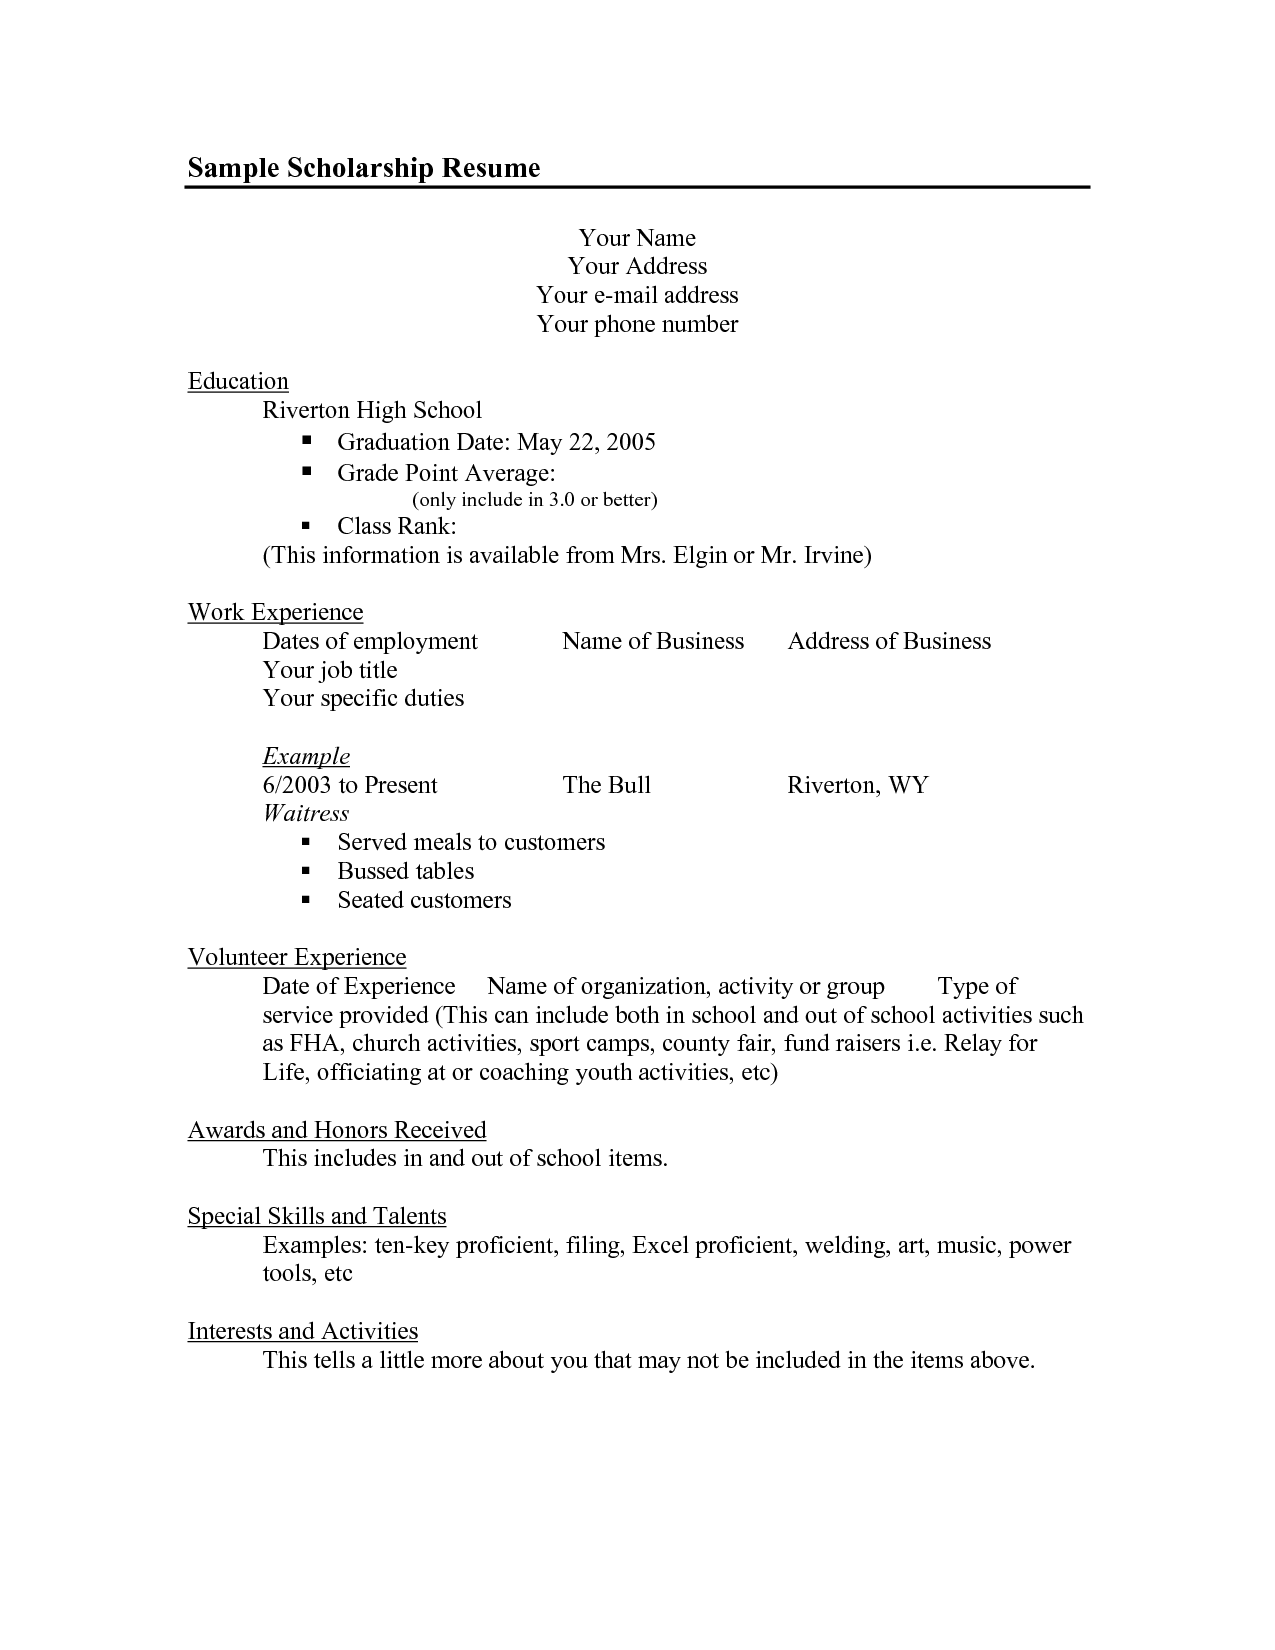 Resume Outline Examples Scholarship Resume Templates  Sample Scholarship Resume